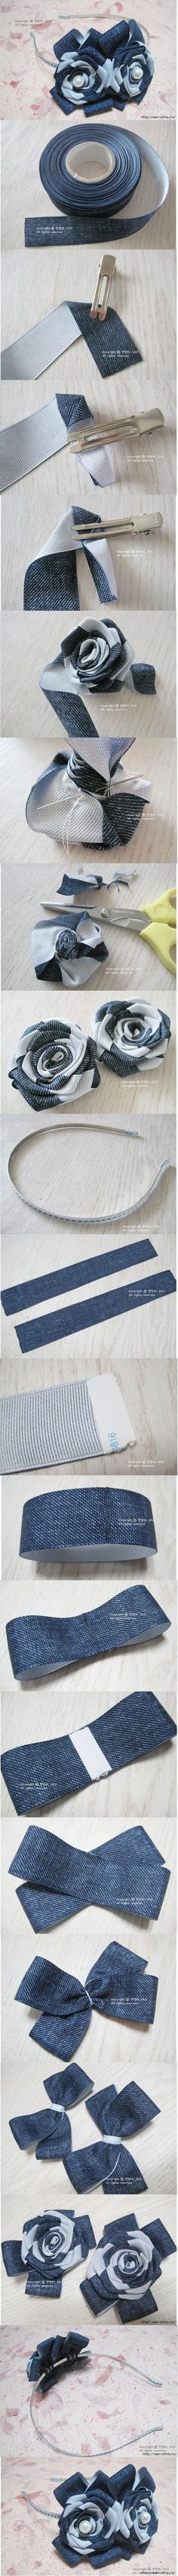 DIY Herringbone Ribbon Roses DIY Projects | UsefulDIY.com Follow Us on Facebook --> https://www.facebook.com/UsefulDiy: